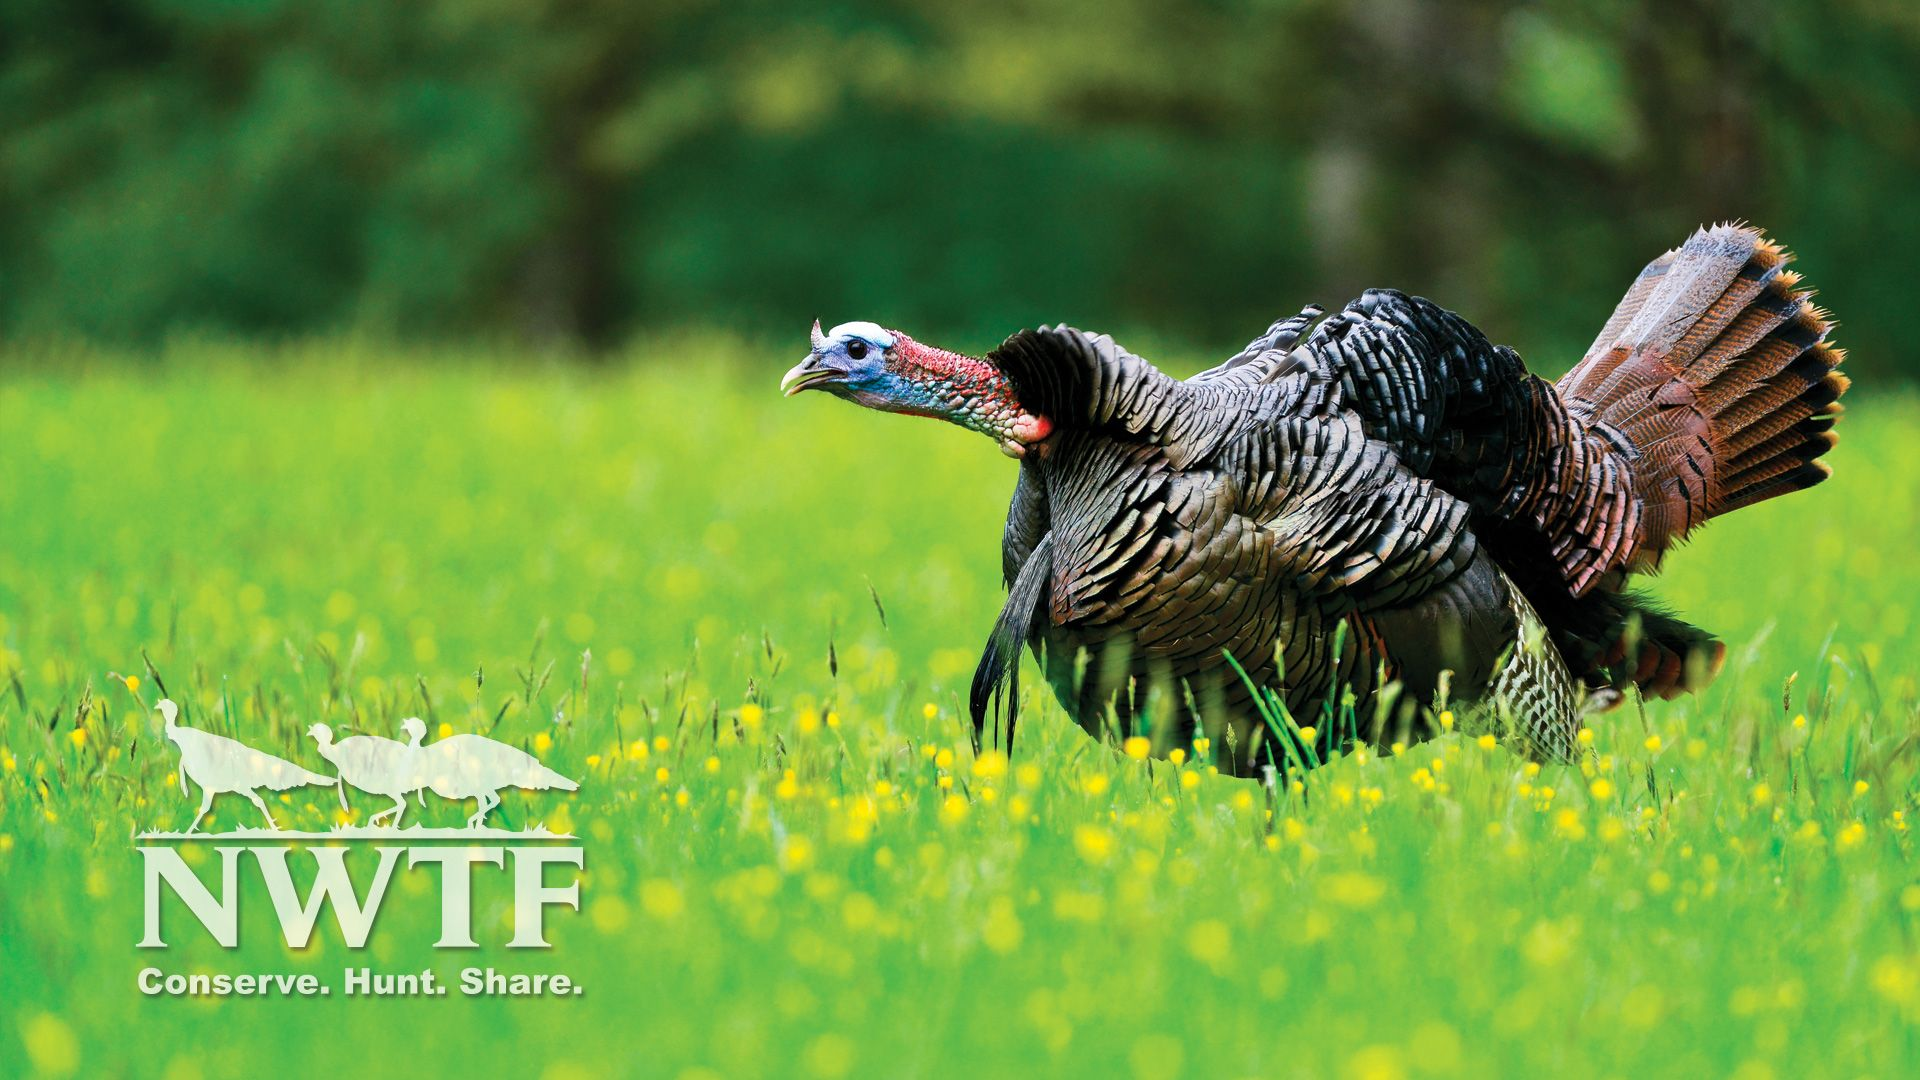 Turkey Hunting Wallpapers Top Free Turkey Hunting Backgrounds Wallpaperaccess